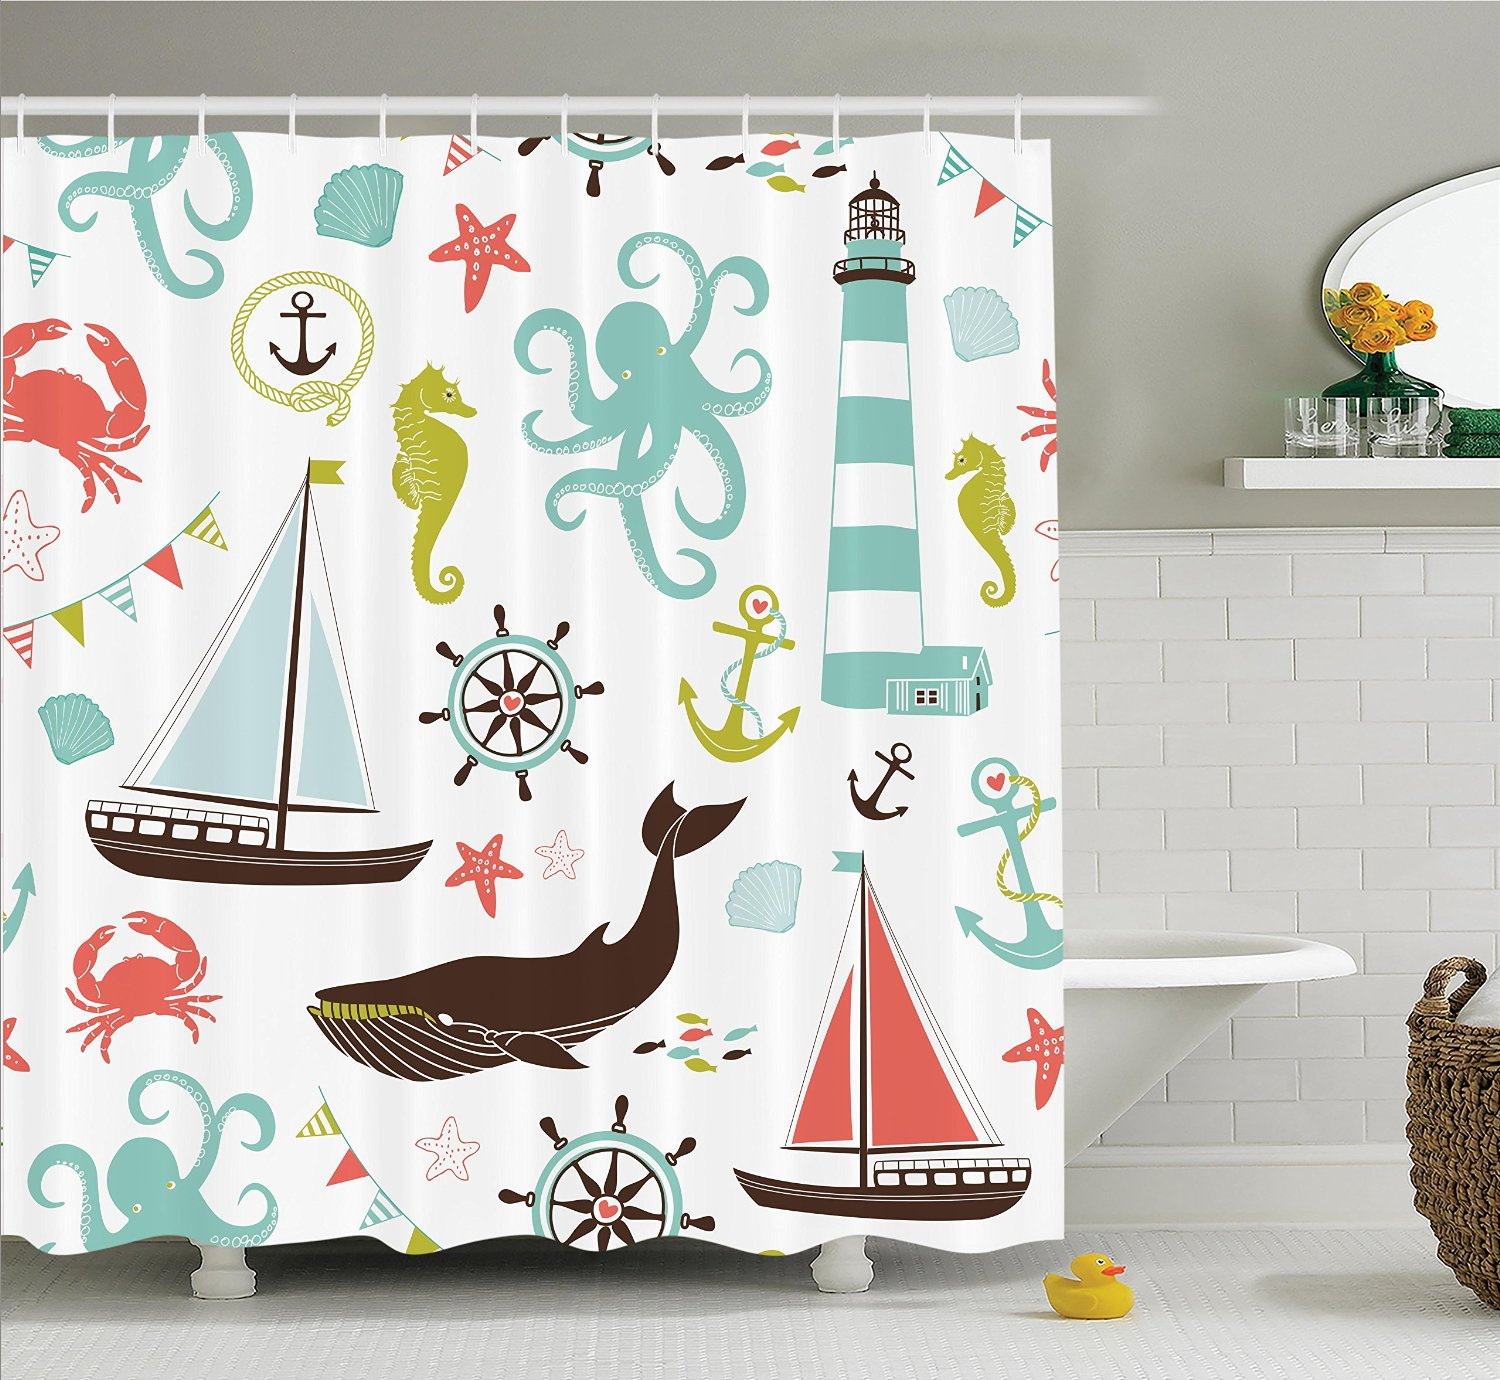 Whale shower curtain - Warm Tour Fabric Shower Curtain Whale Sharke And Octopus Coral Crab Marine Lighthouse Ocean 71